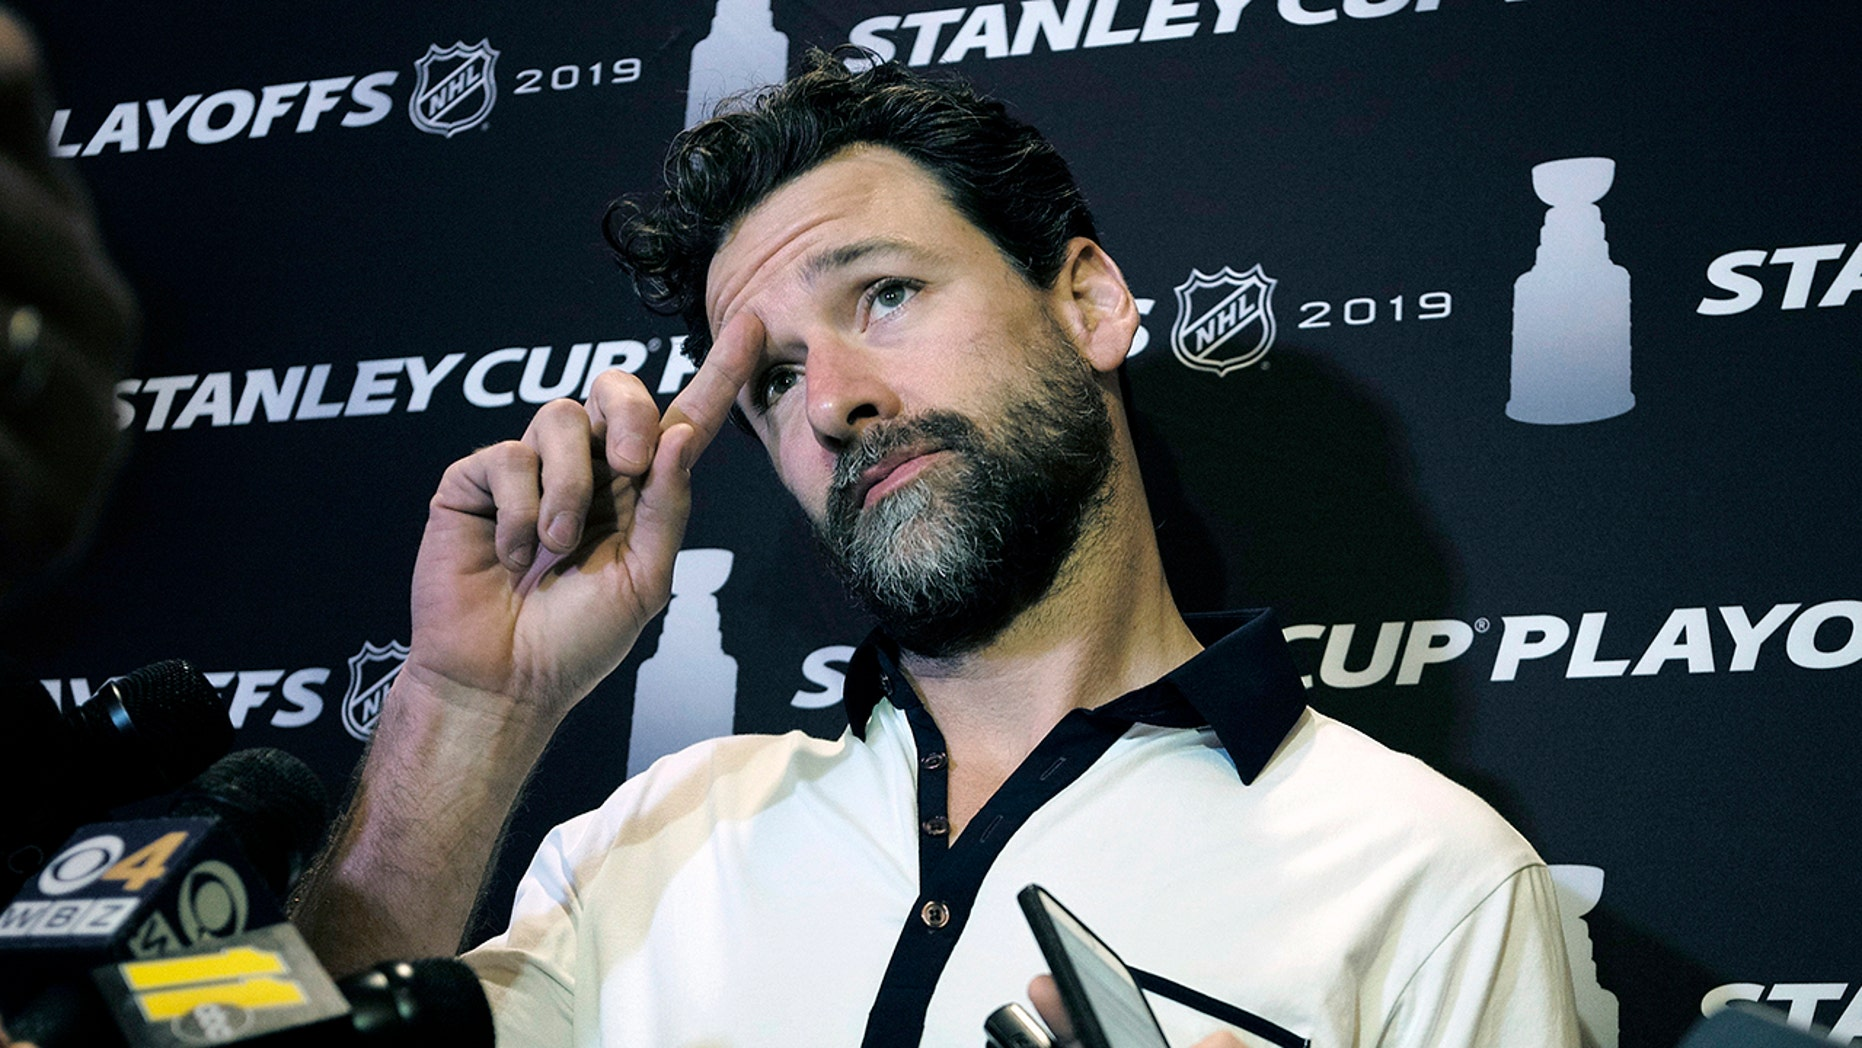 """FILE - In this Wednesday, May 8, 2019, file photo, Carolina Hurricanes' Justin Williams talks with reporters during an NHL hockey media availability in Boston. Hurricanes captain Justin Williams says he is taking a break from the NHL to start this season. The 37-year-old forward said in a statement Monday, Sept. 2, 2019, that he will """"step away"""" from the sport. (AP Photo/Steven Senne, File)"""